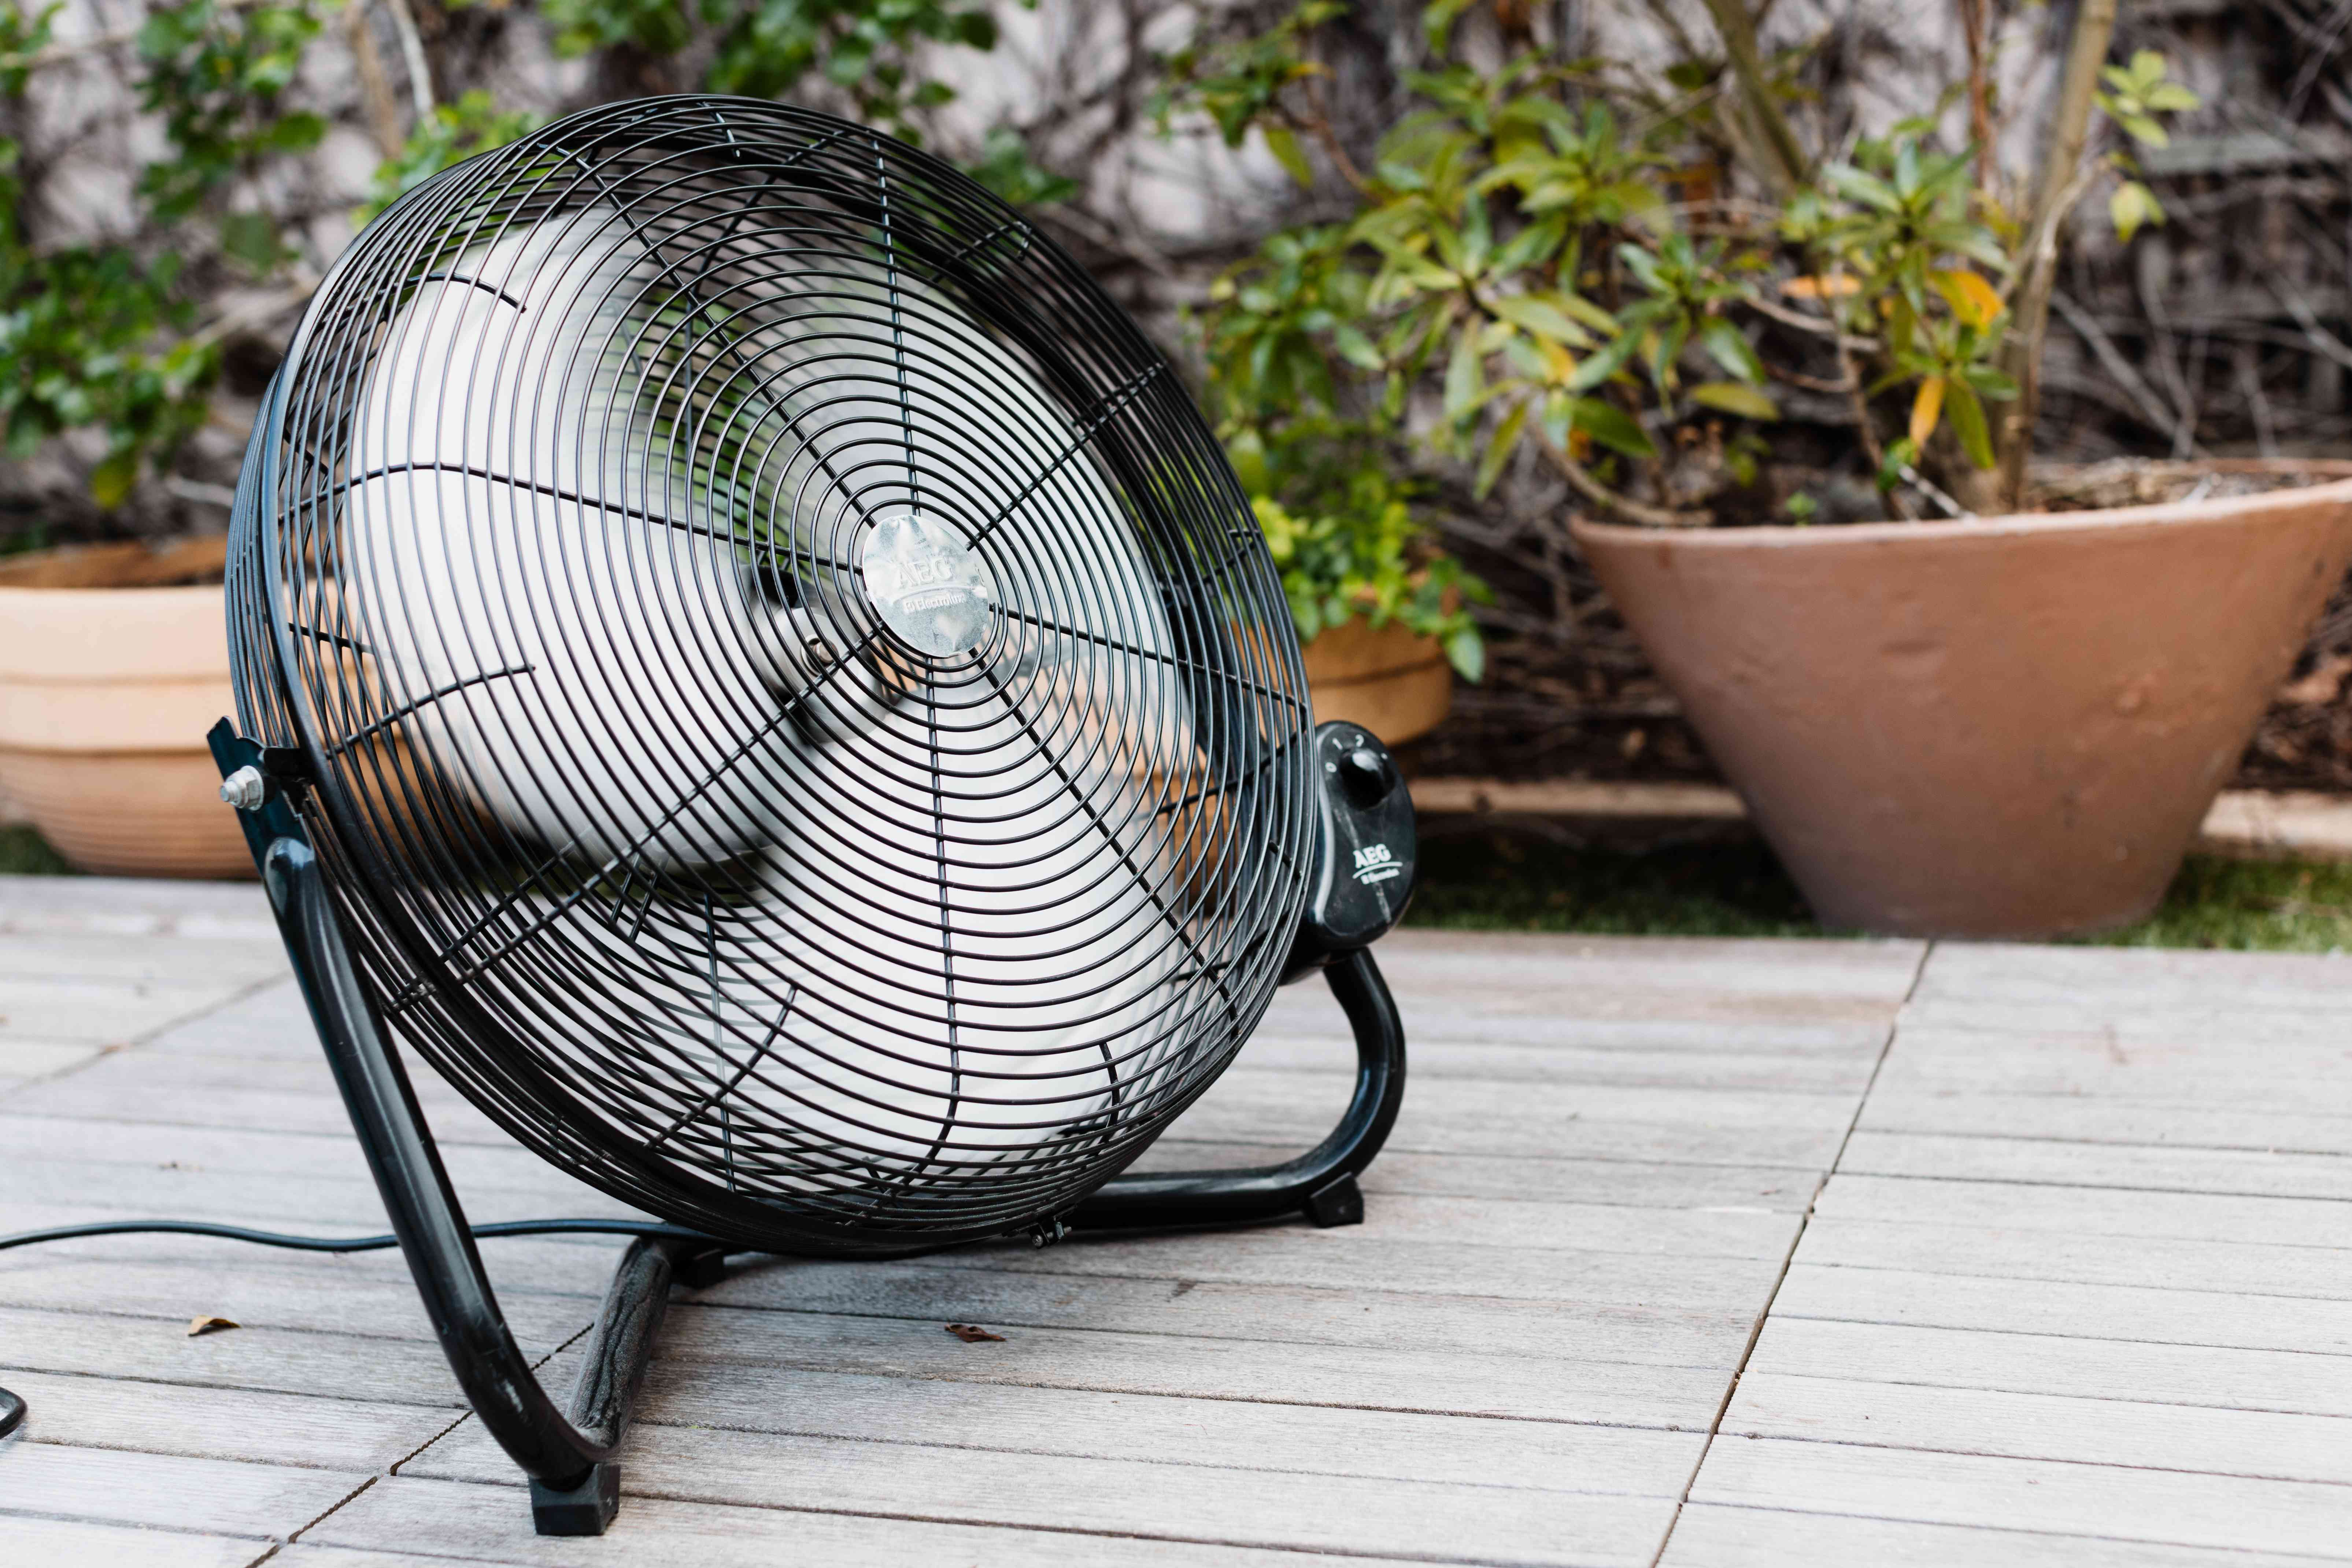 Large round fan running to reduce mosquito landings